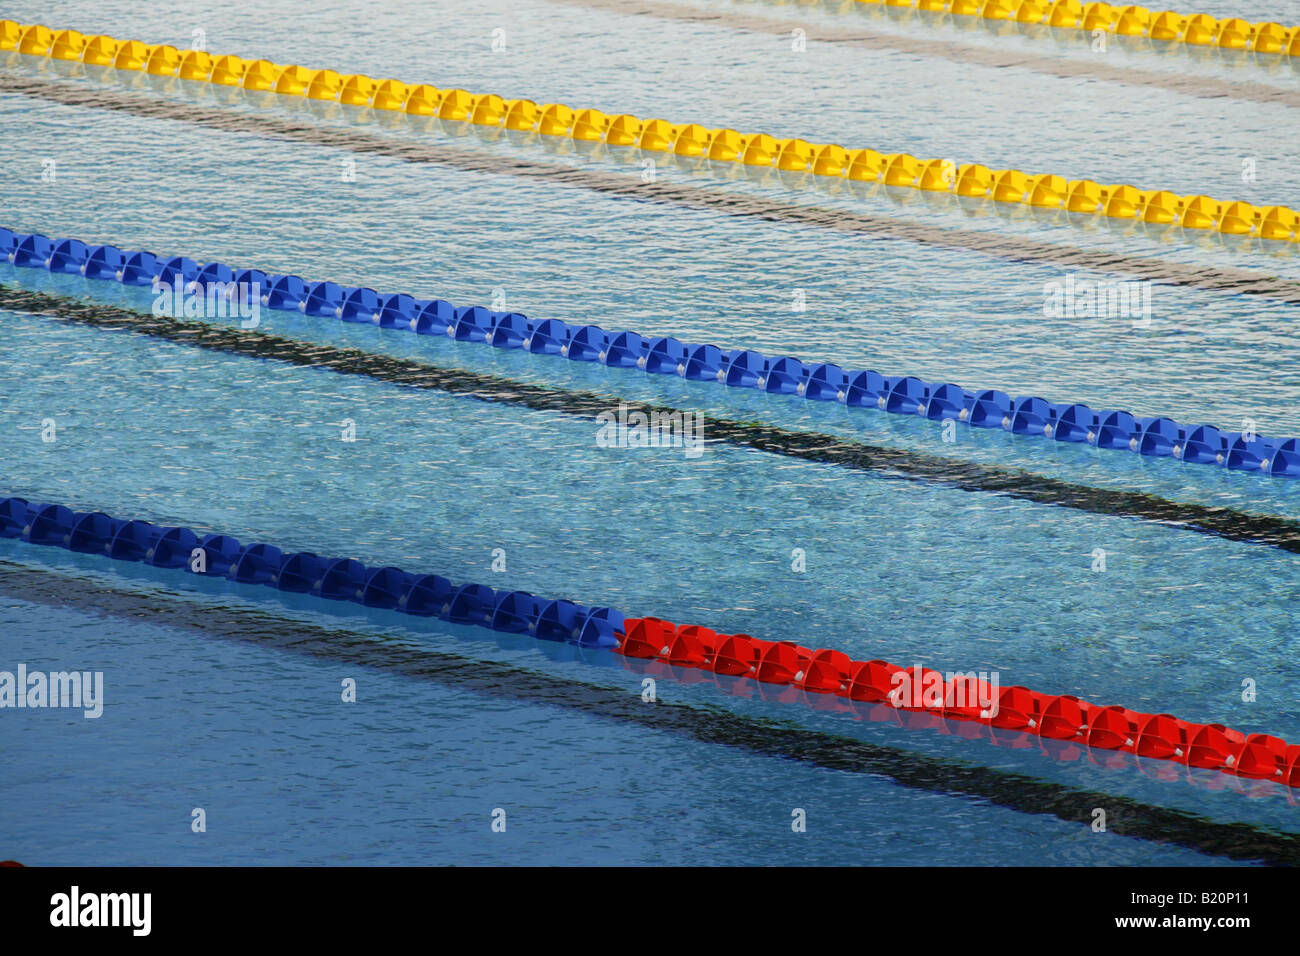 empty olympic size swimming pool with lanes